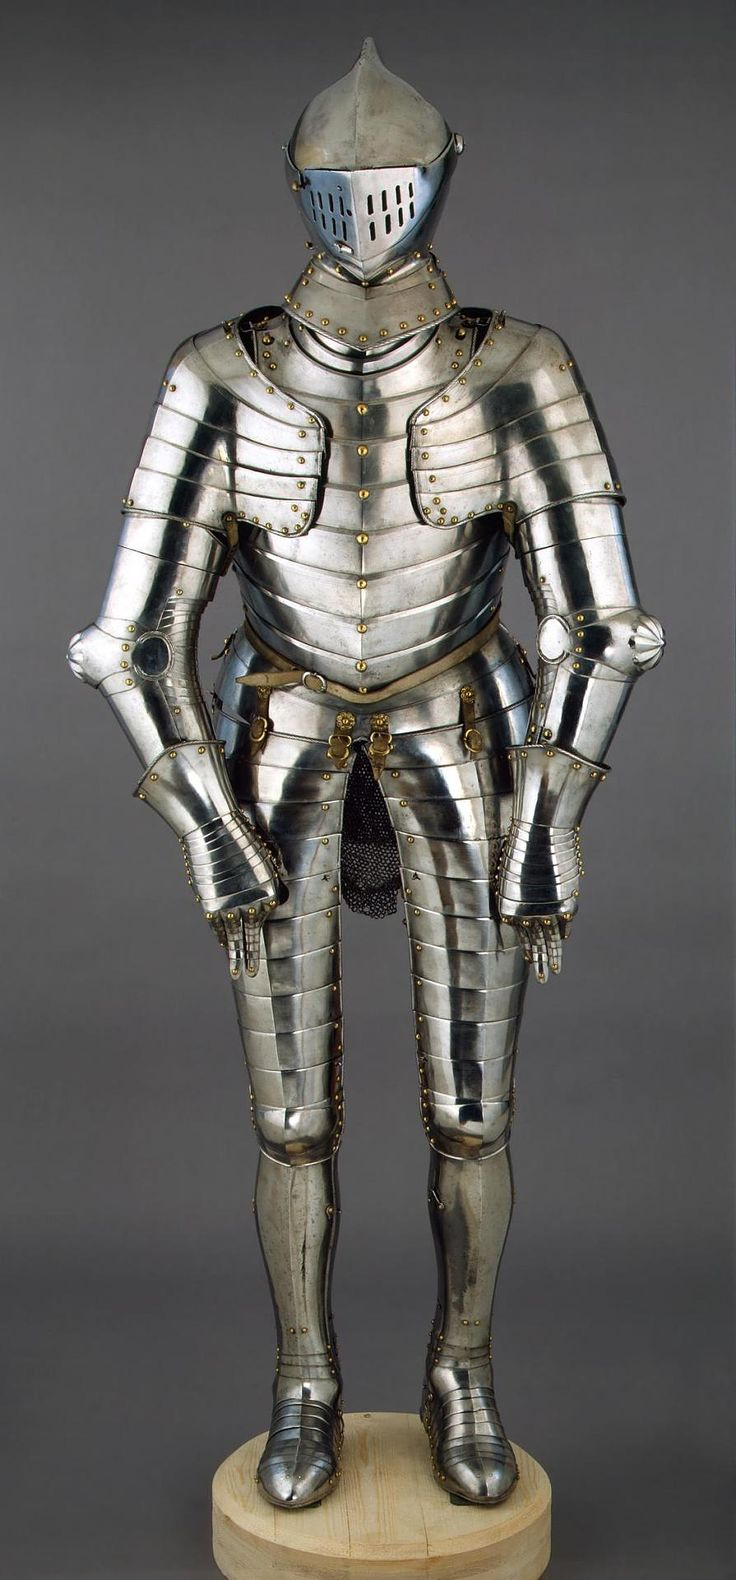 106 best images about Real Armor on Pinterest | 16th ...